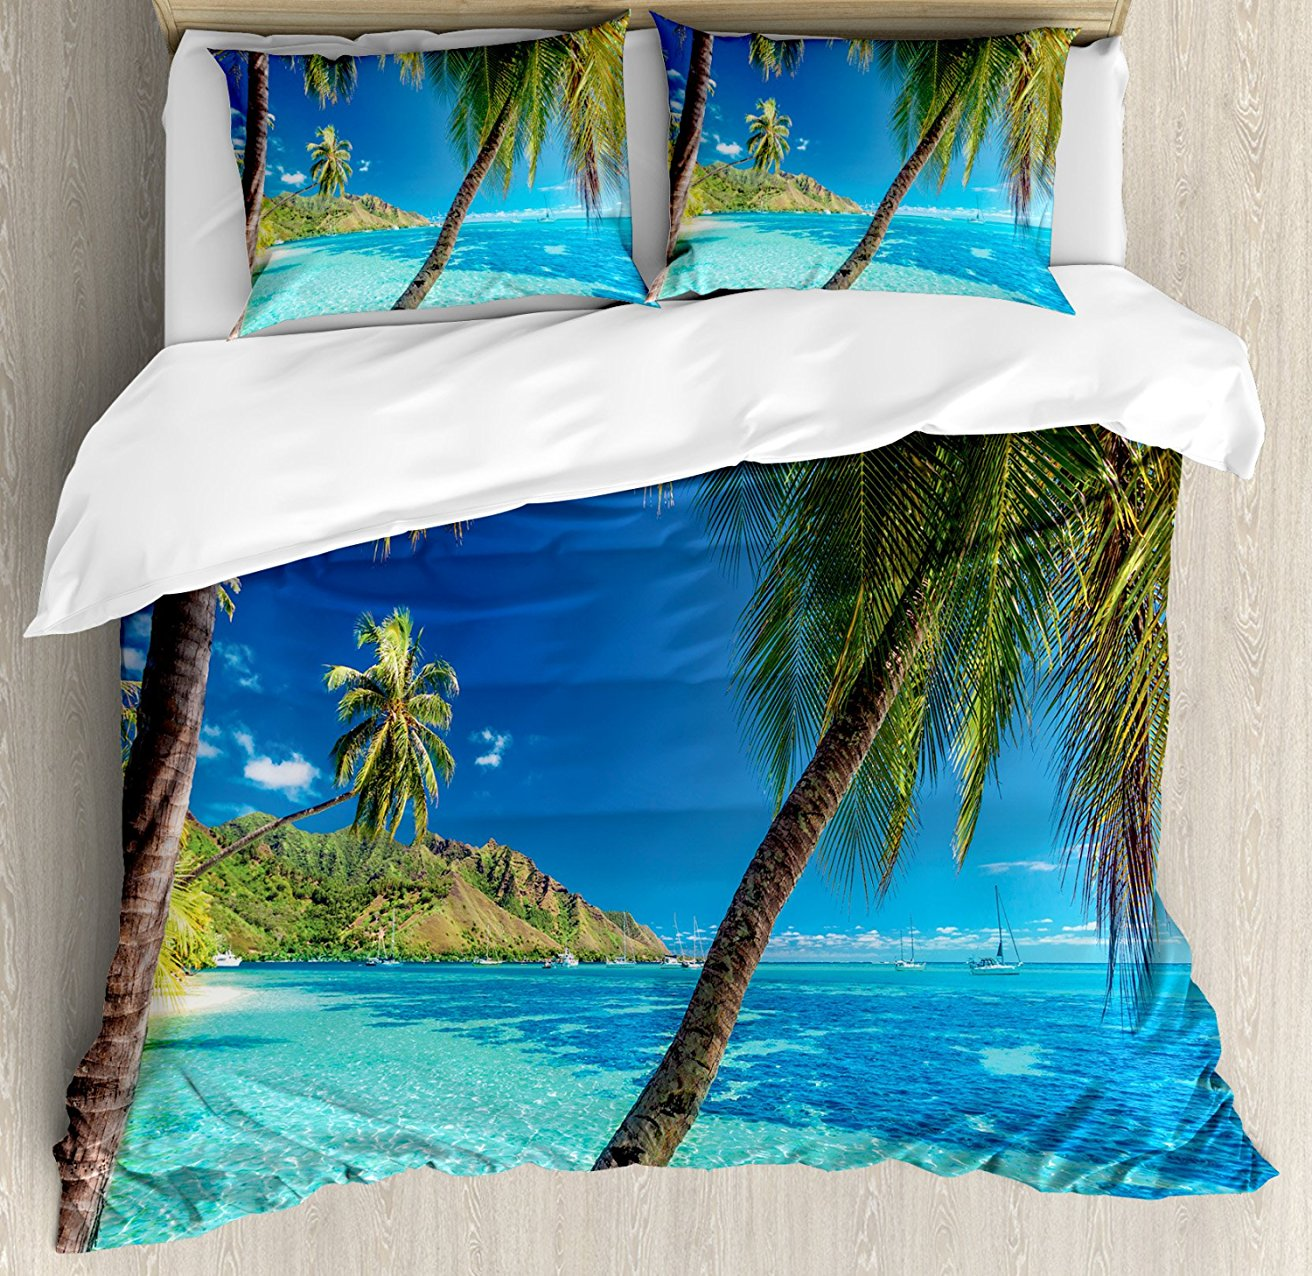 Ocean Duvet Cover Set Image of a Tropical Island with the Palm Trees and Clear Sea Beach Theme Print, 4 Piece Bedding Set